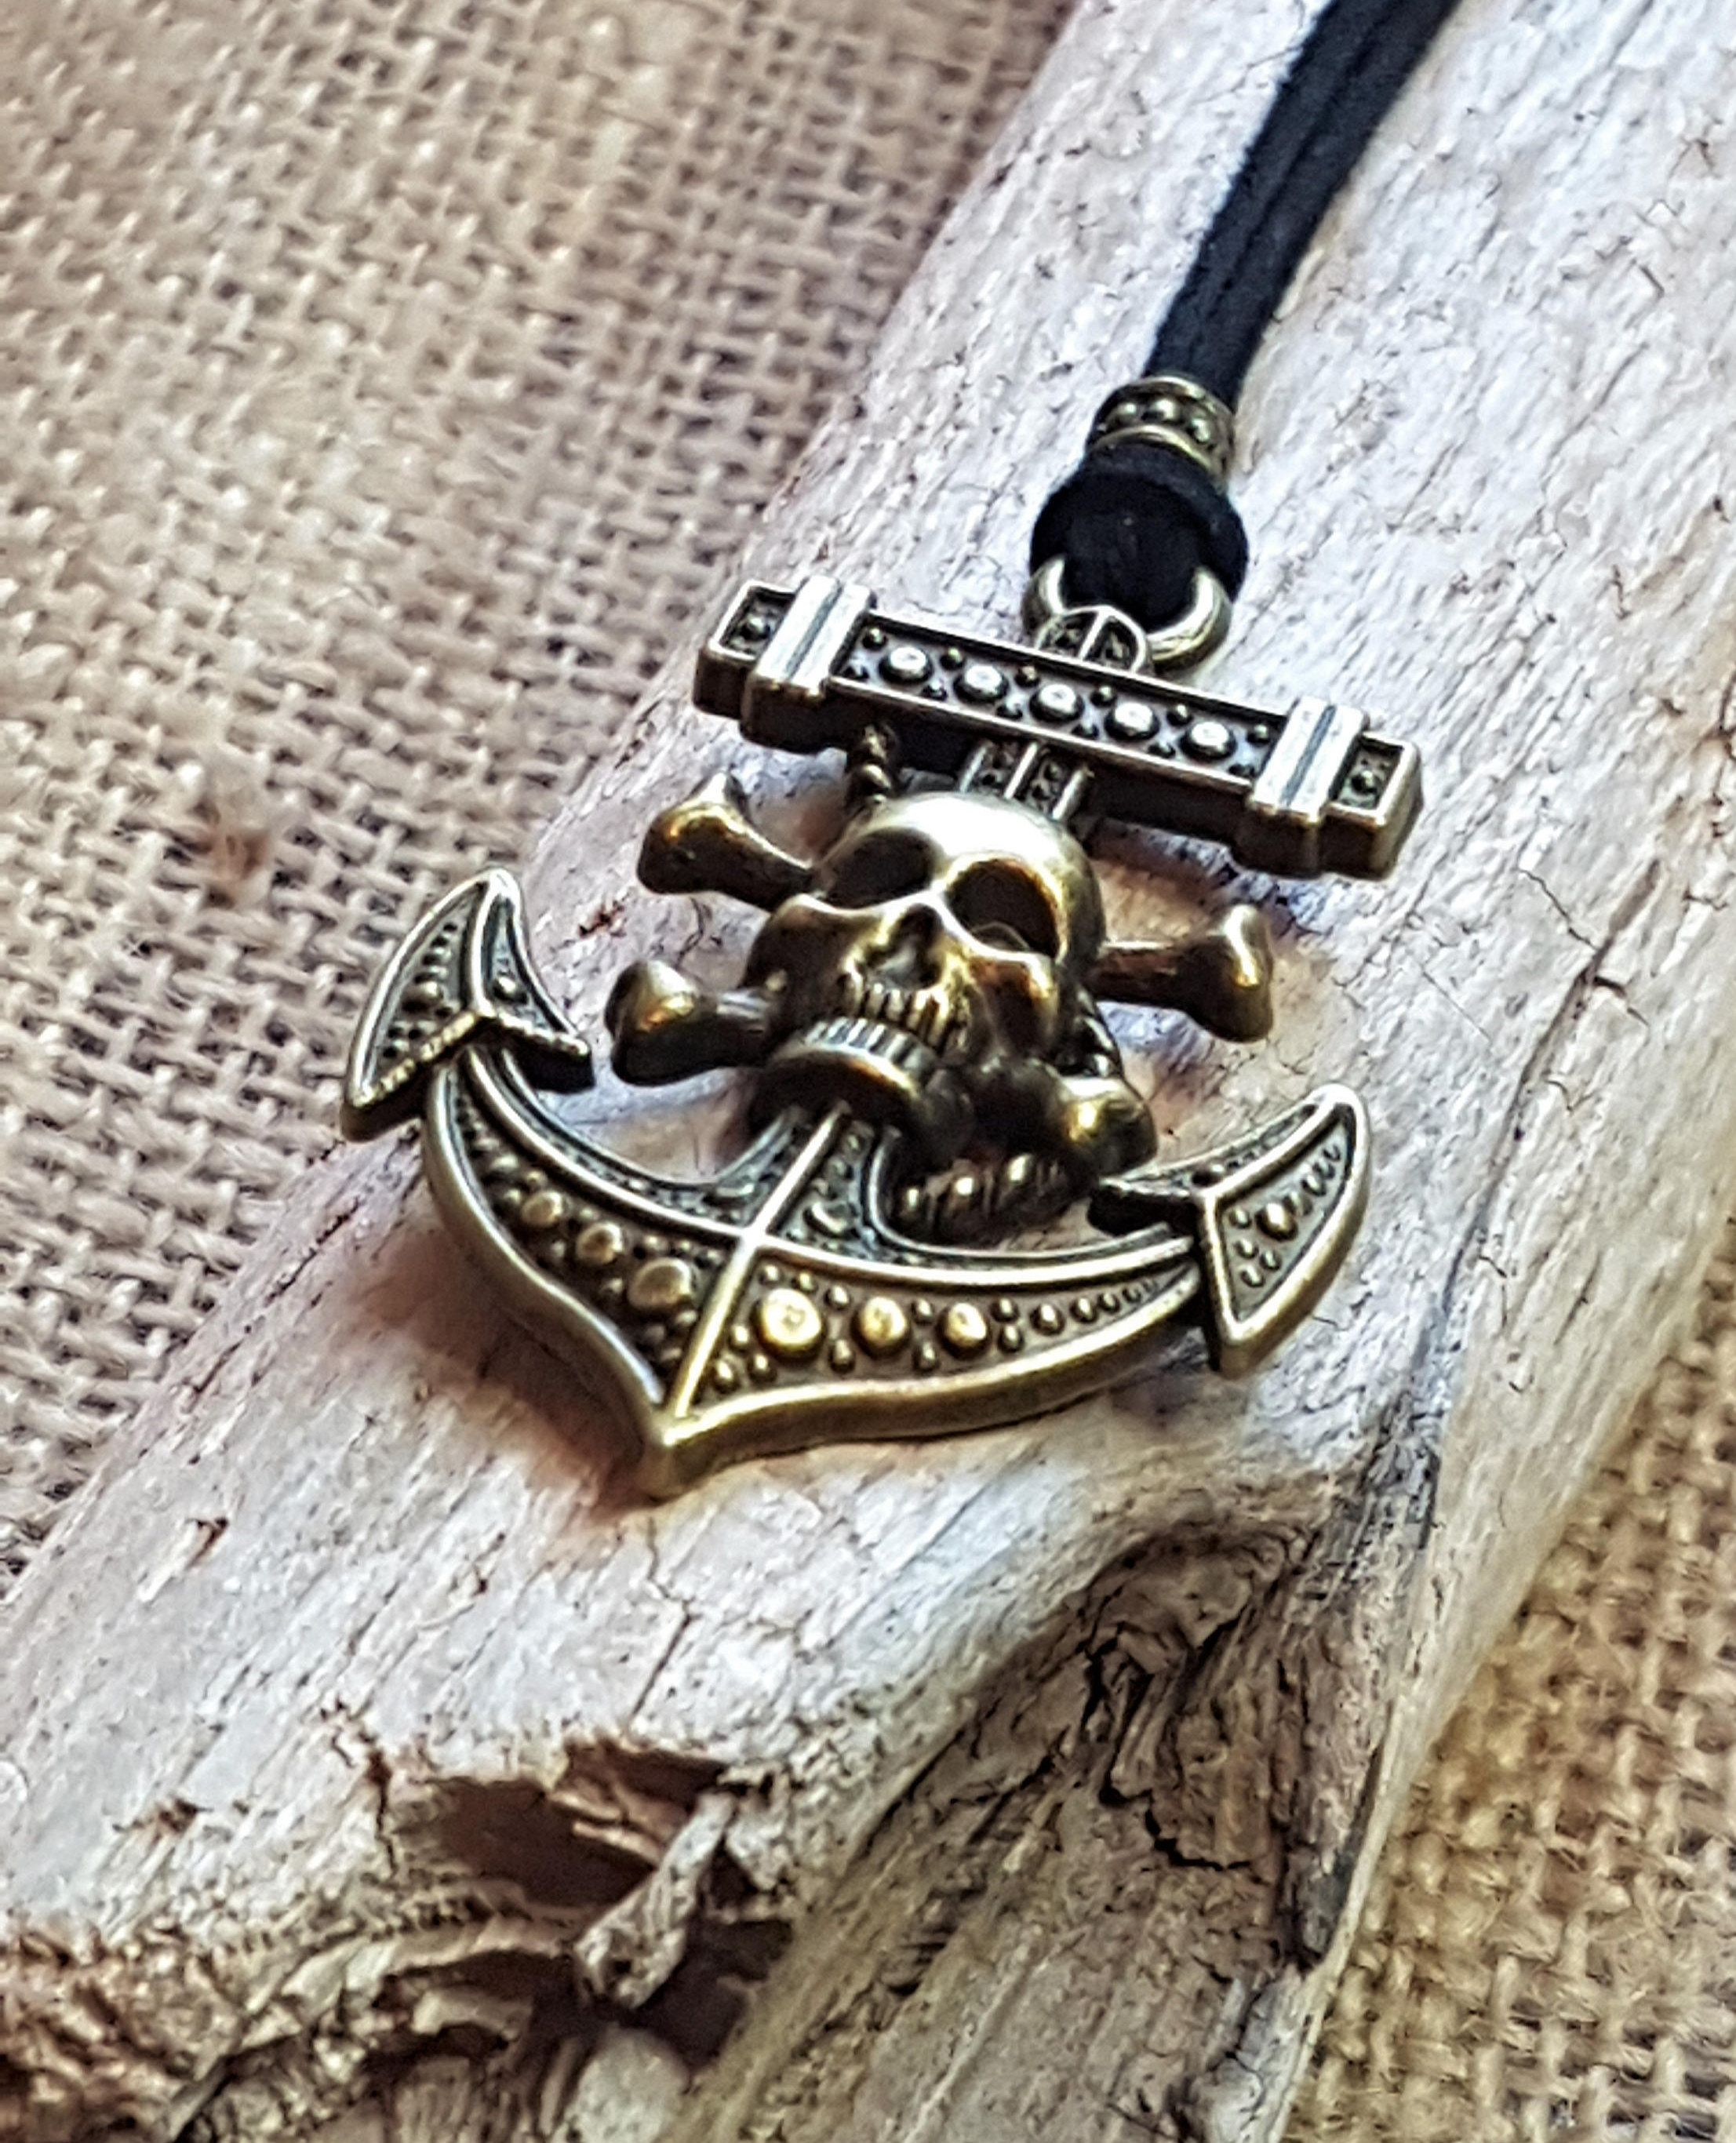 Pin by Francis Wilson on Miscou Treasures Pirate jewelry